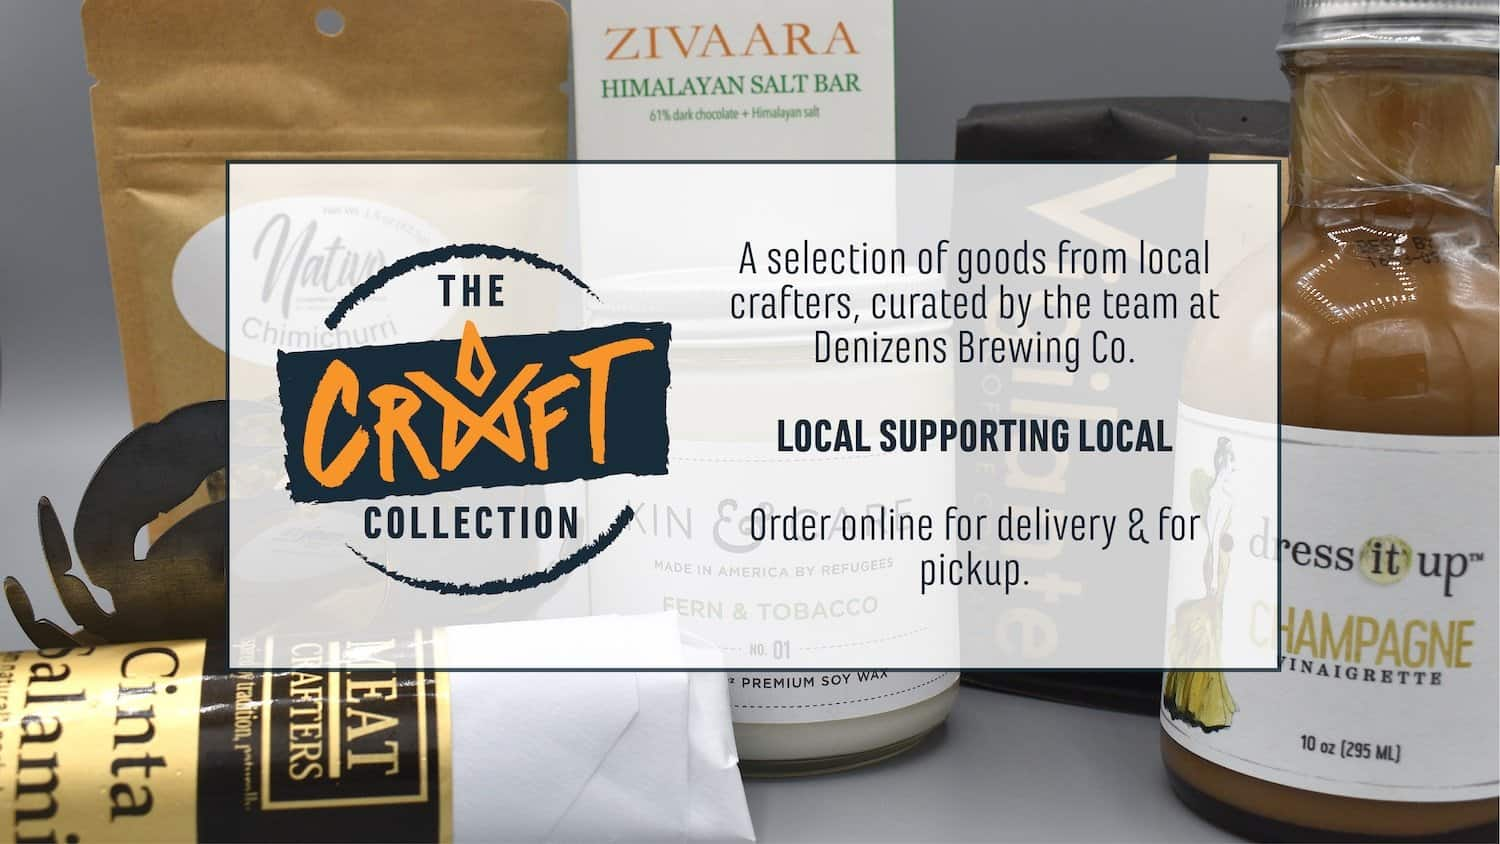 Denizens Expands Product Line to Support Local Businesses - Denizens Brewing Co. has expanded the line of products offered for delivery or pickup by adding goods made by other local businesses. The Craft Collection includes a variety of products curated by the Denizens team.